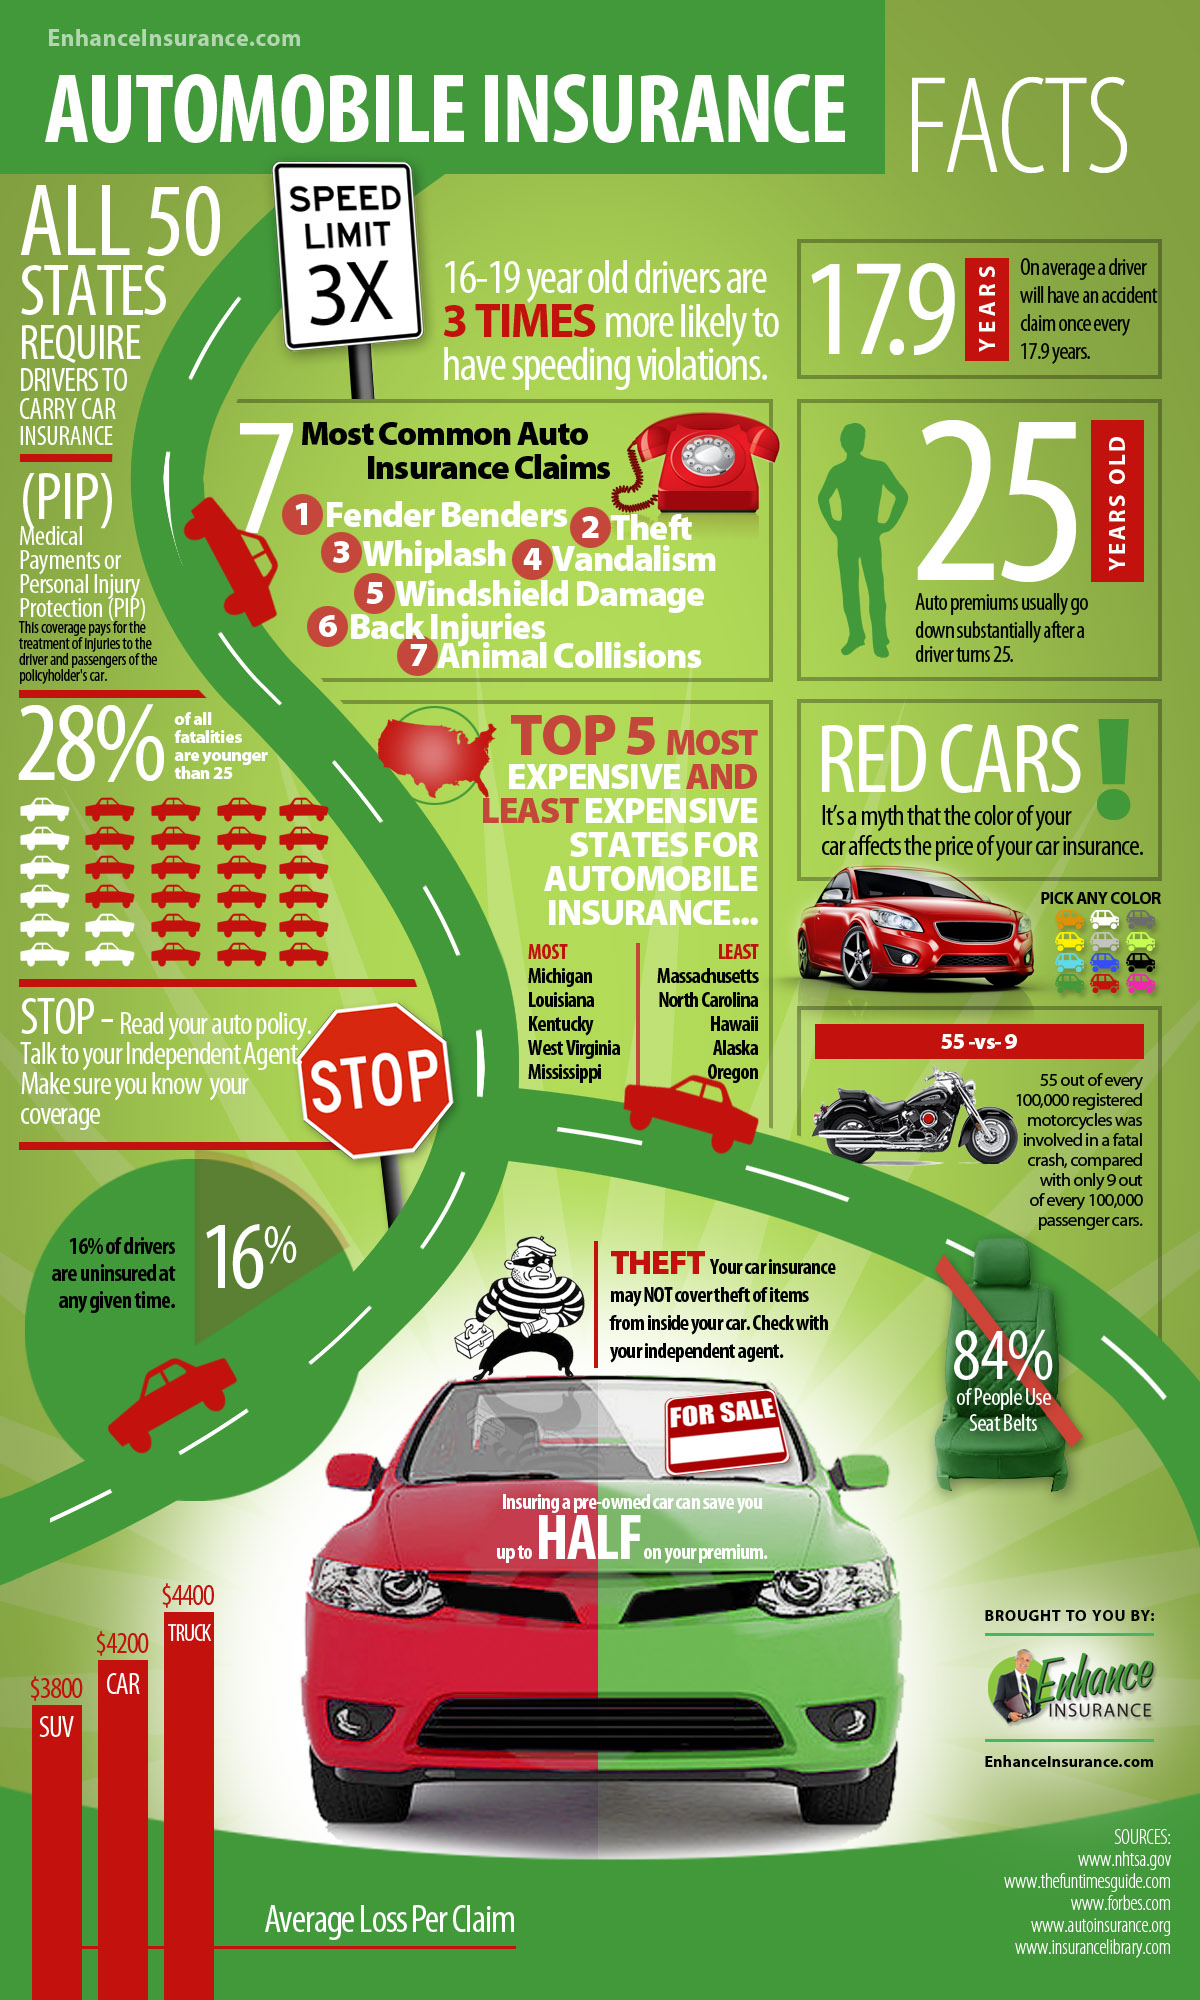 Automobile Insurance Facts Infographic Expert Insurance Reviews